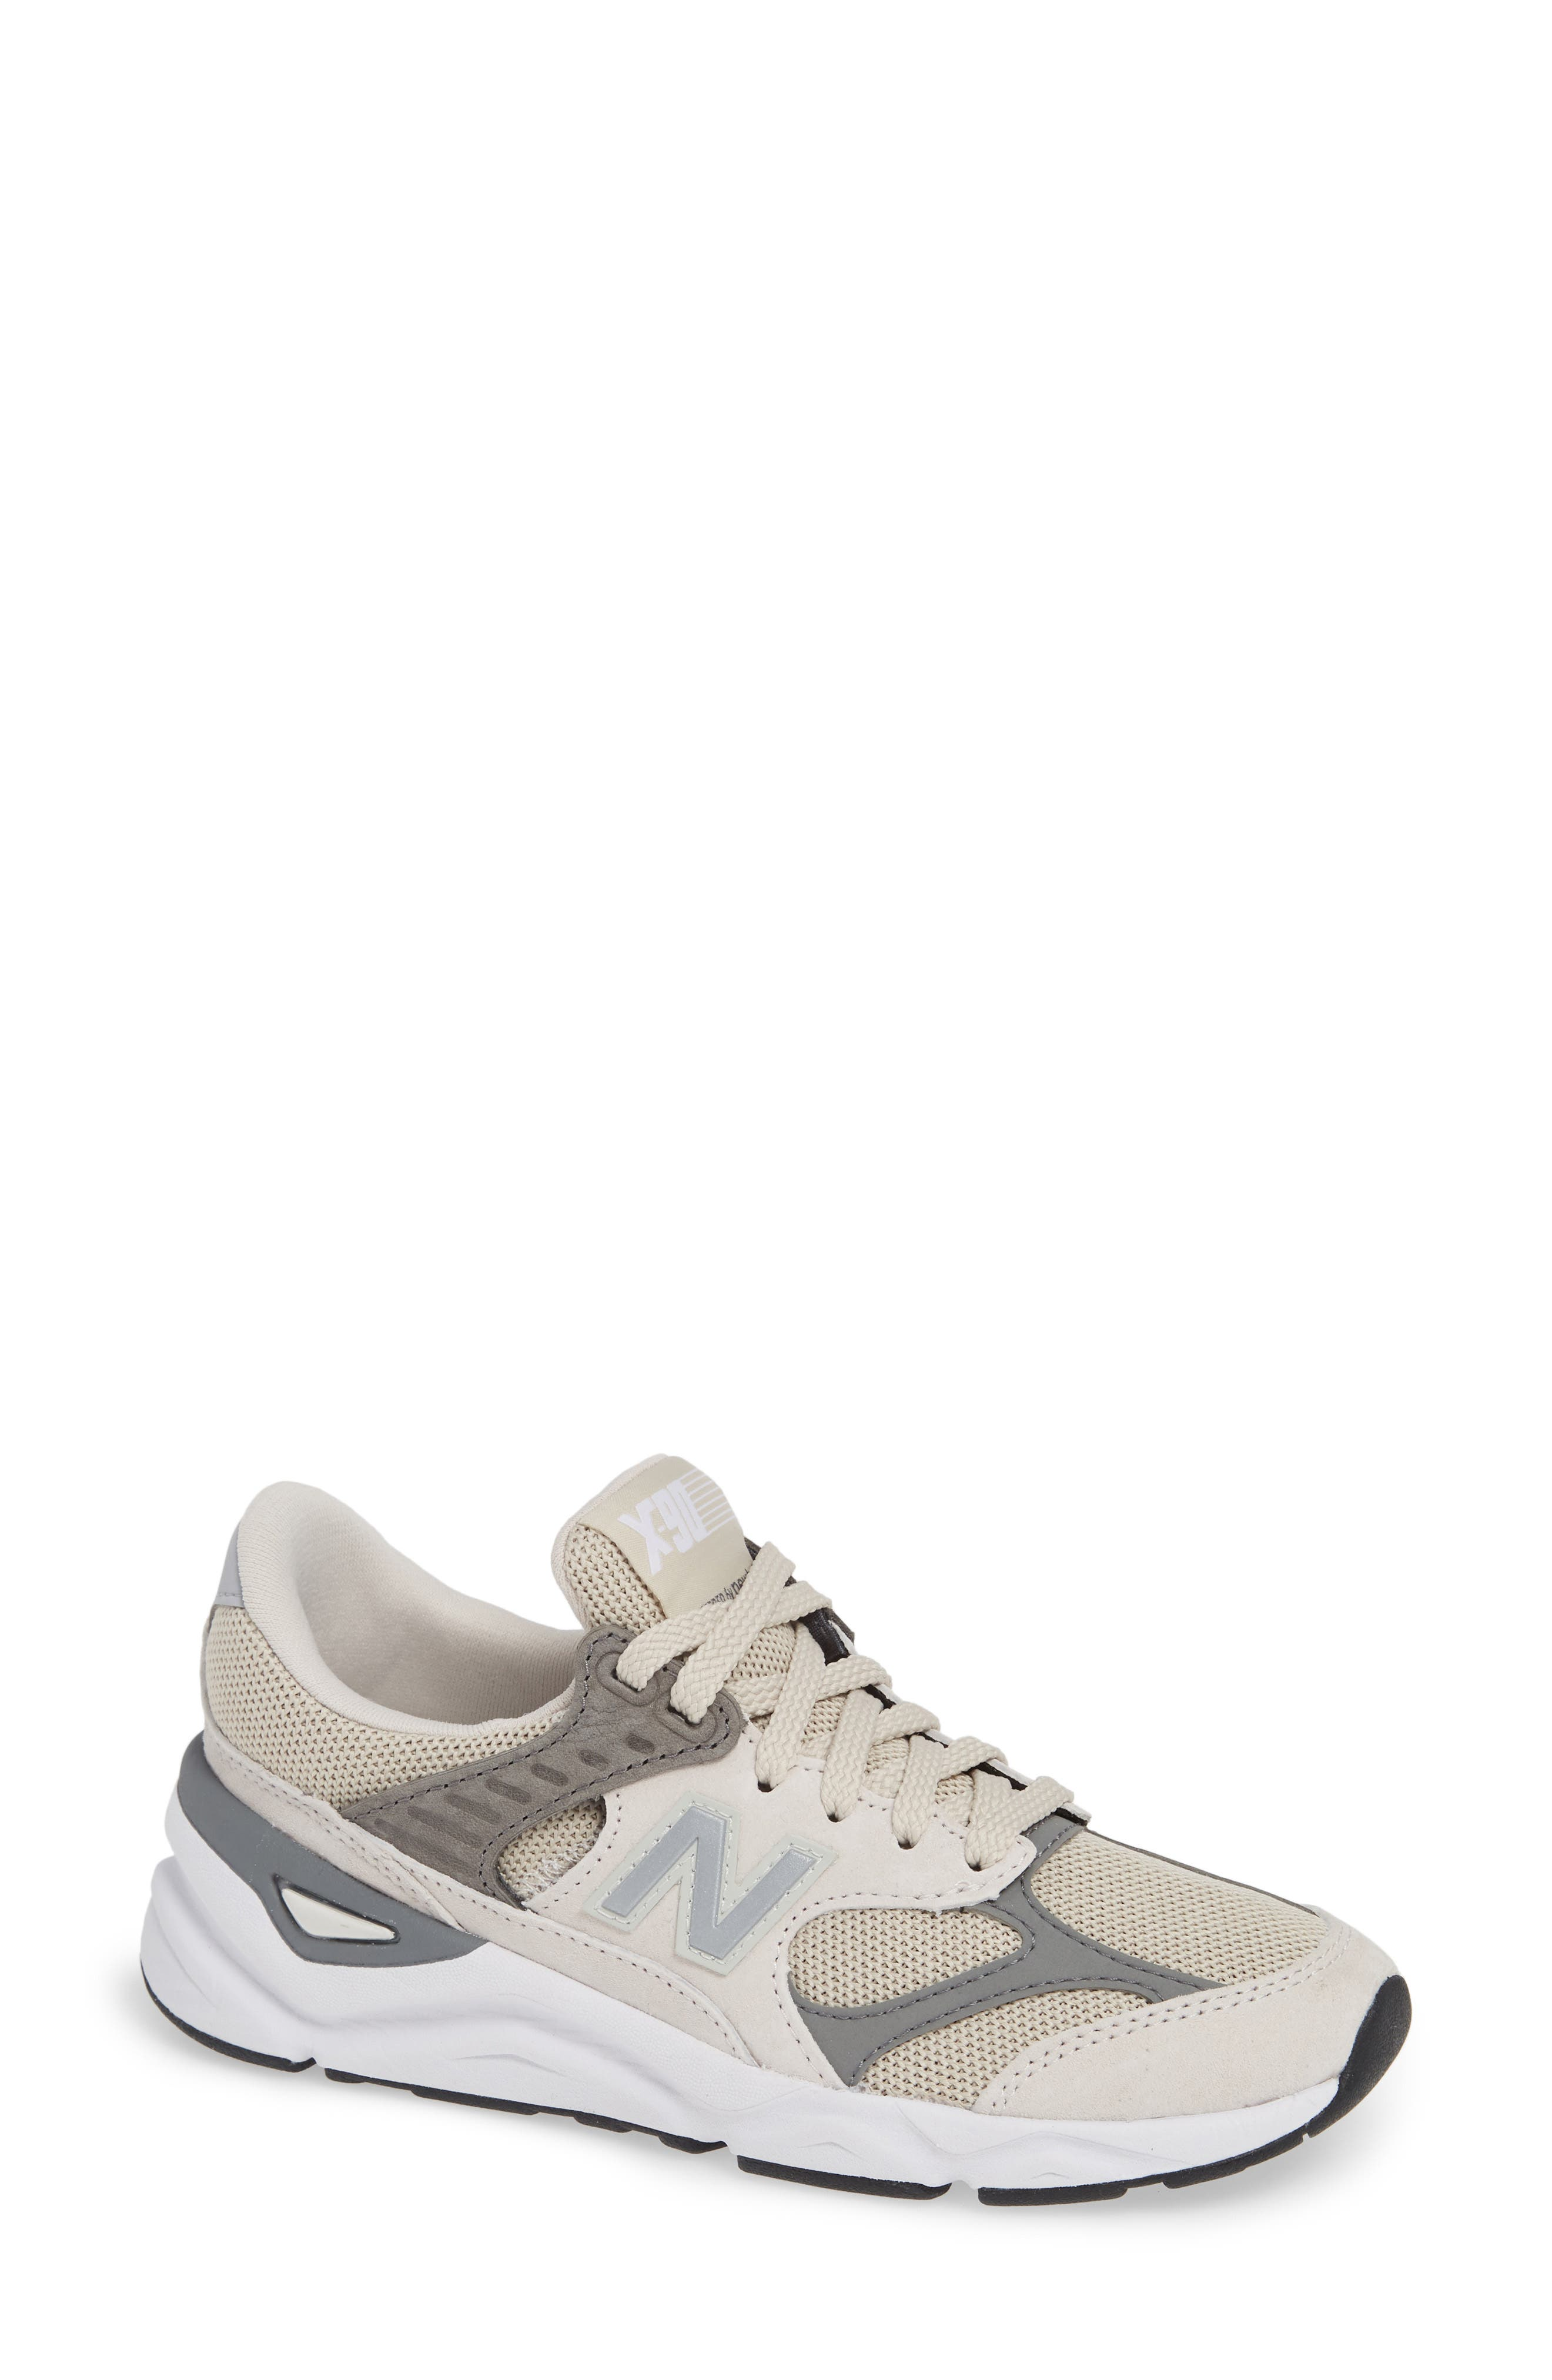 NEW BALANCE Women'S X90 Re-Constructed Lace-Up Sneakers in Moonbeam